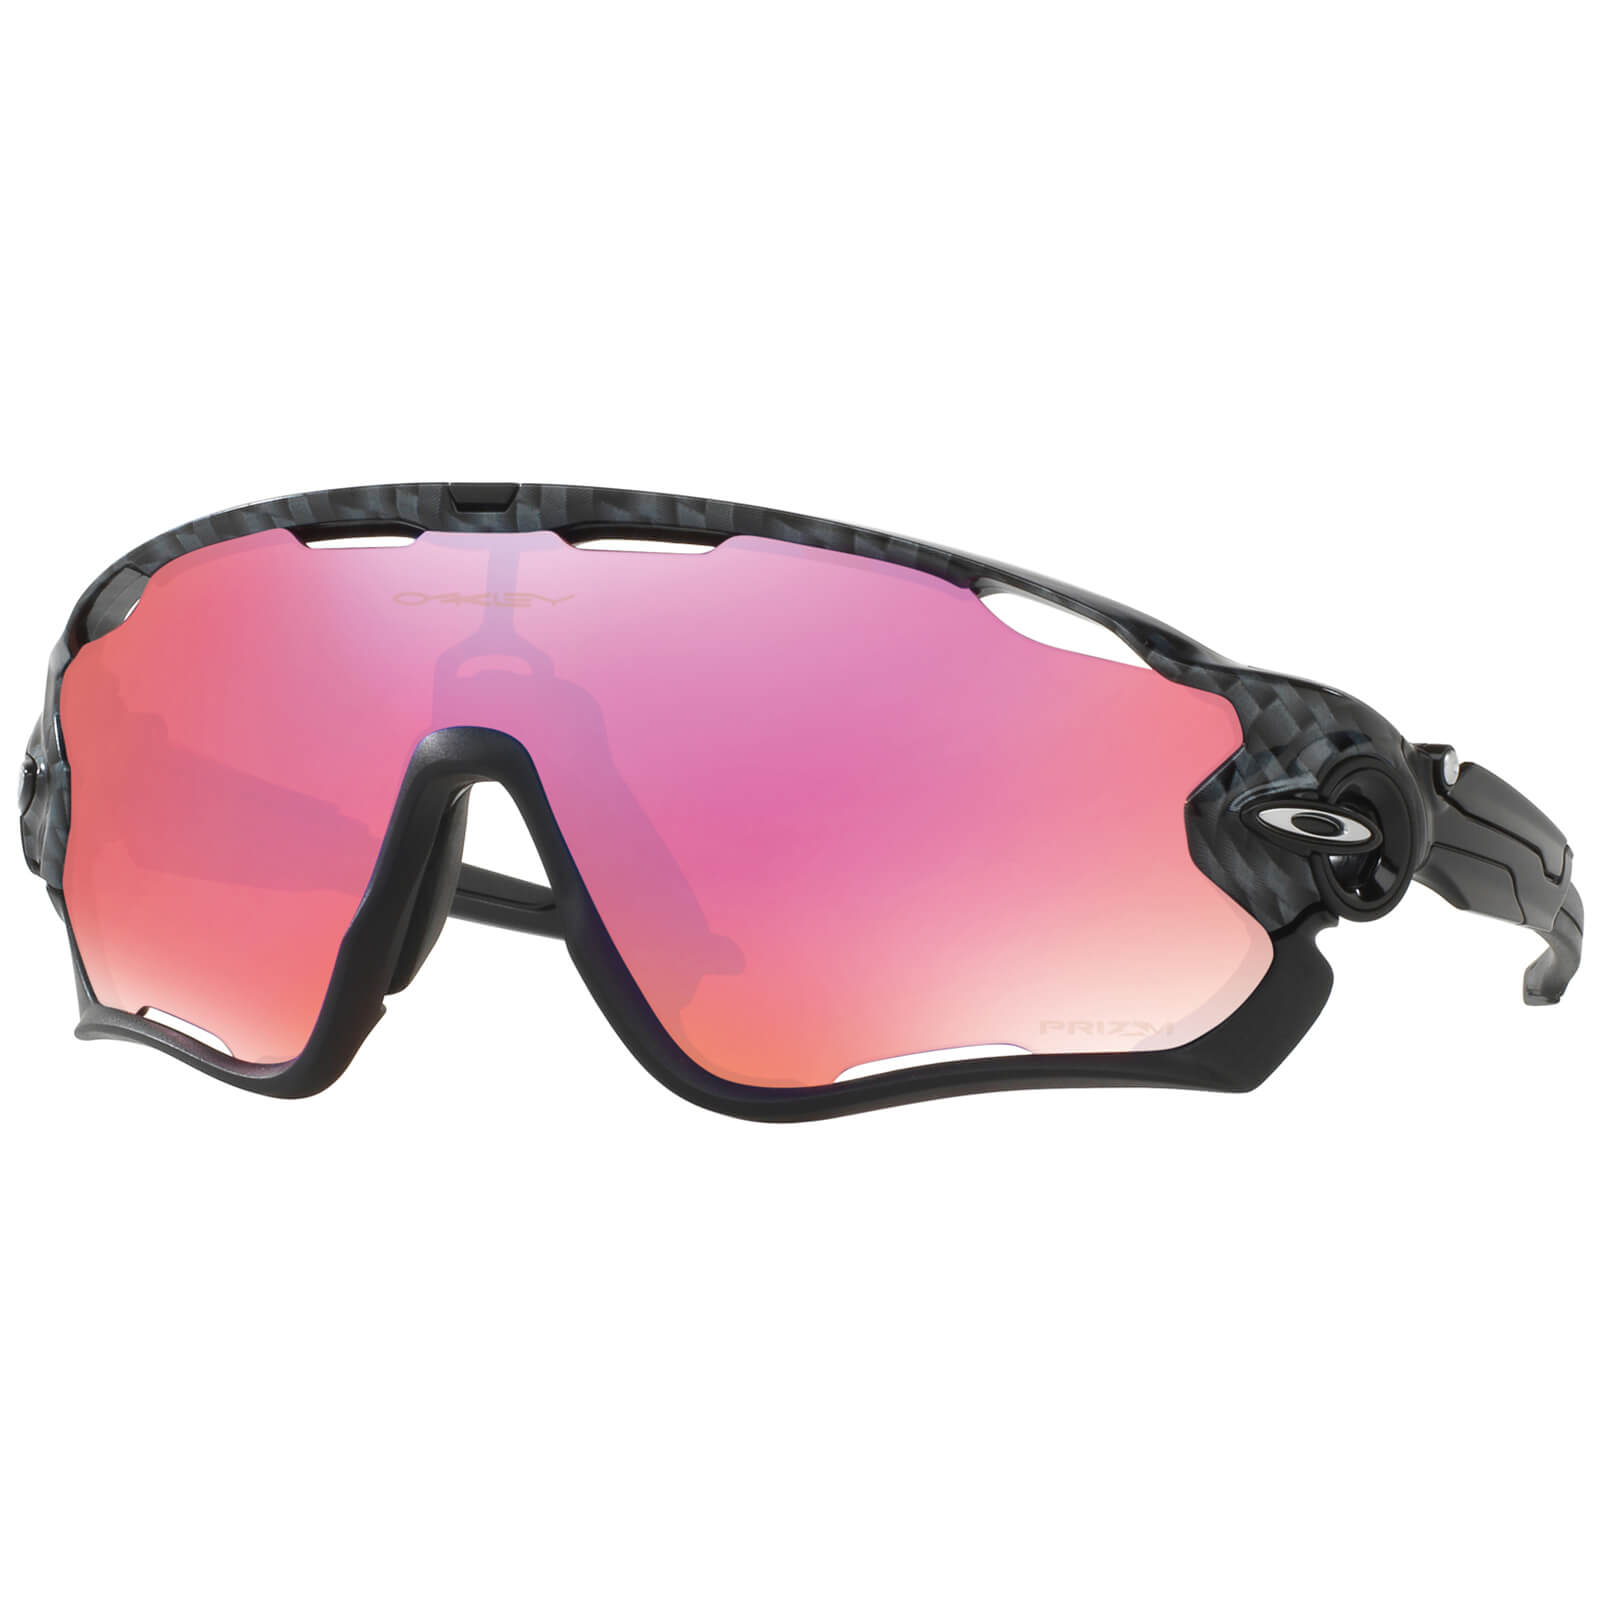 92731dd732 Oakley Jawbreaker Polarised Sunglasses - Carbon Fiber Prizm Trail ...